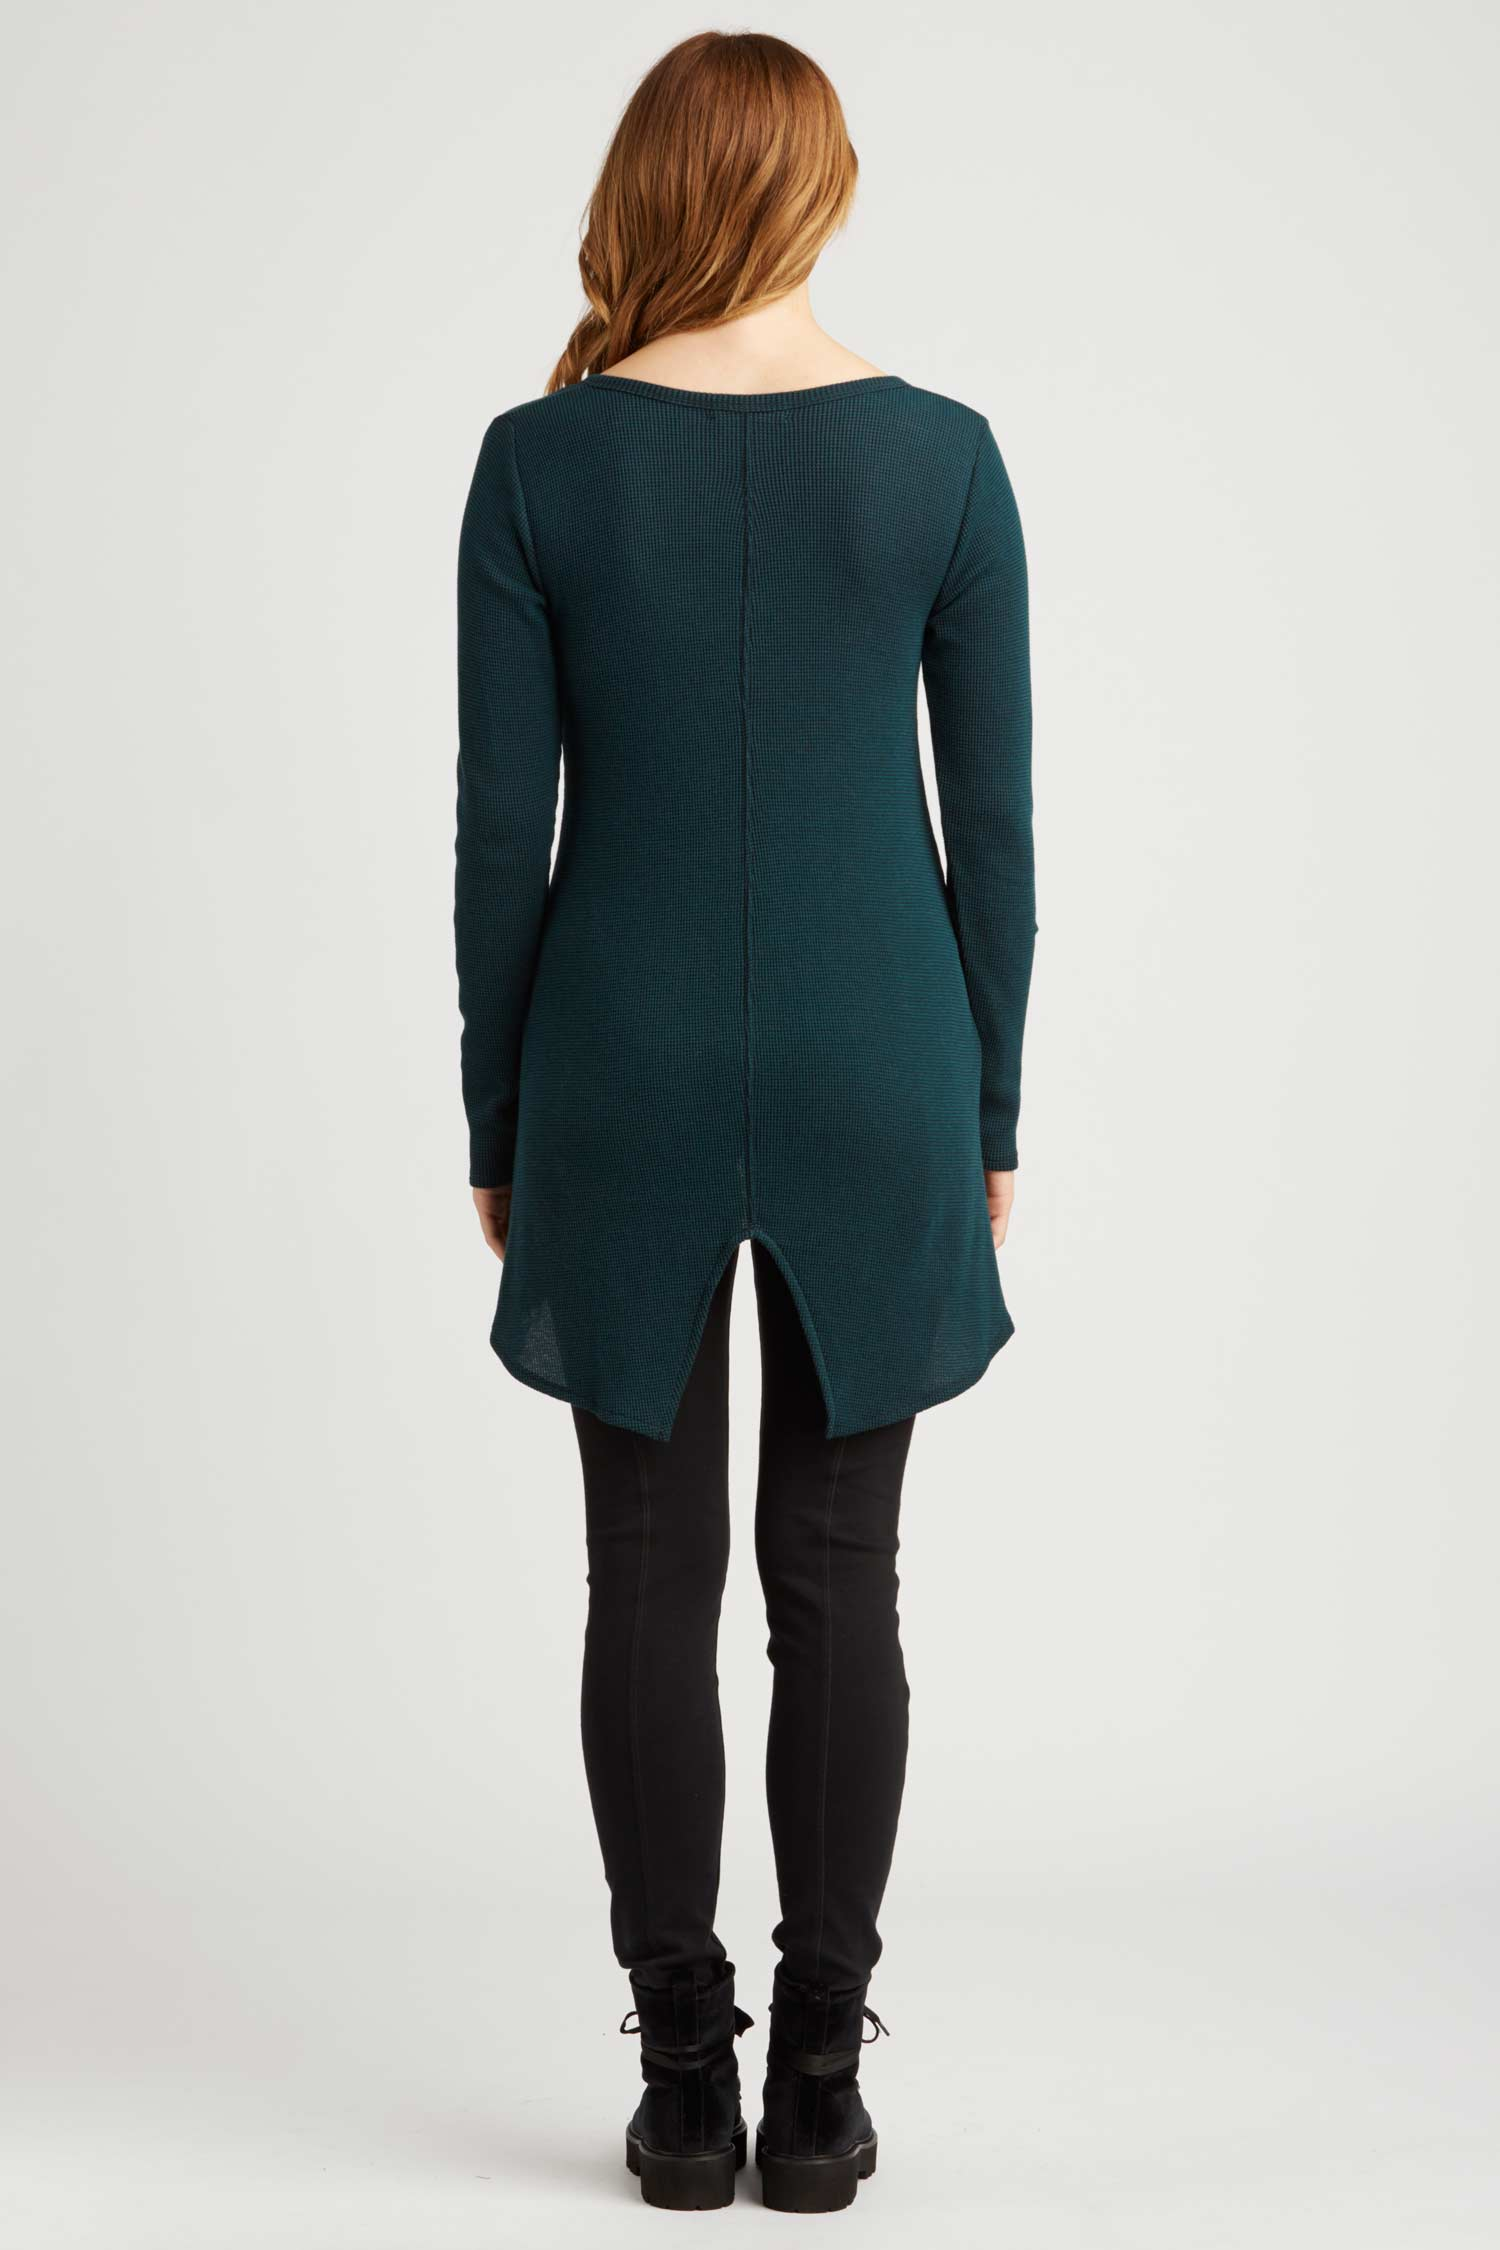 Womens Waffle Henley Tunic | Organic Cotton Clothing | Teal